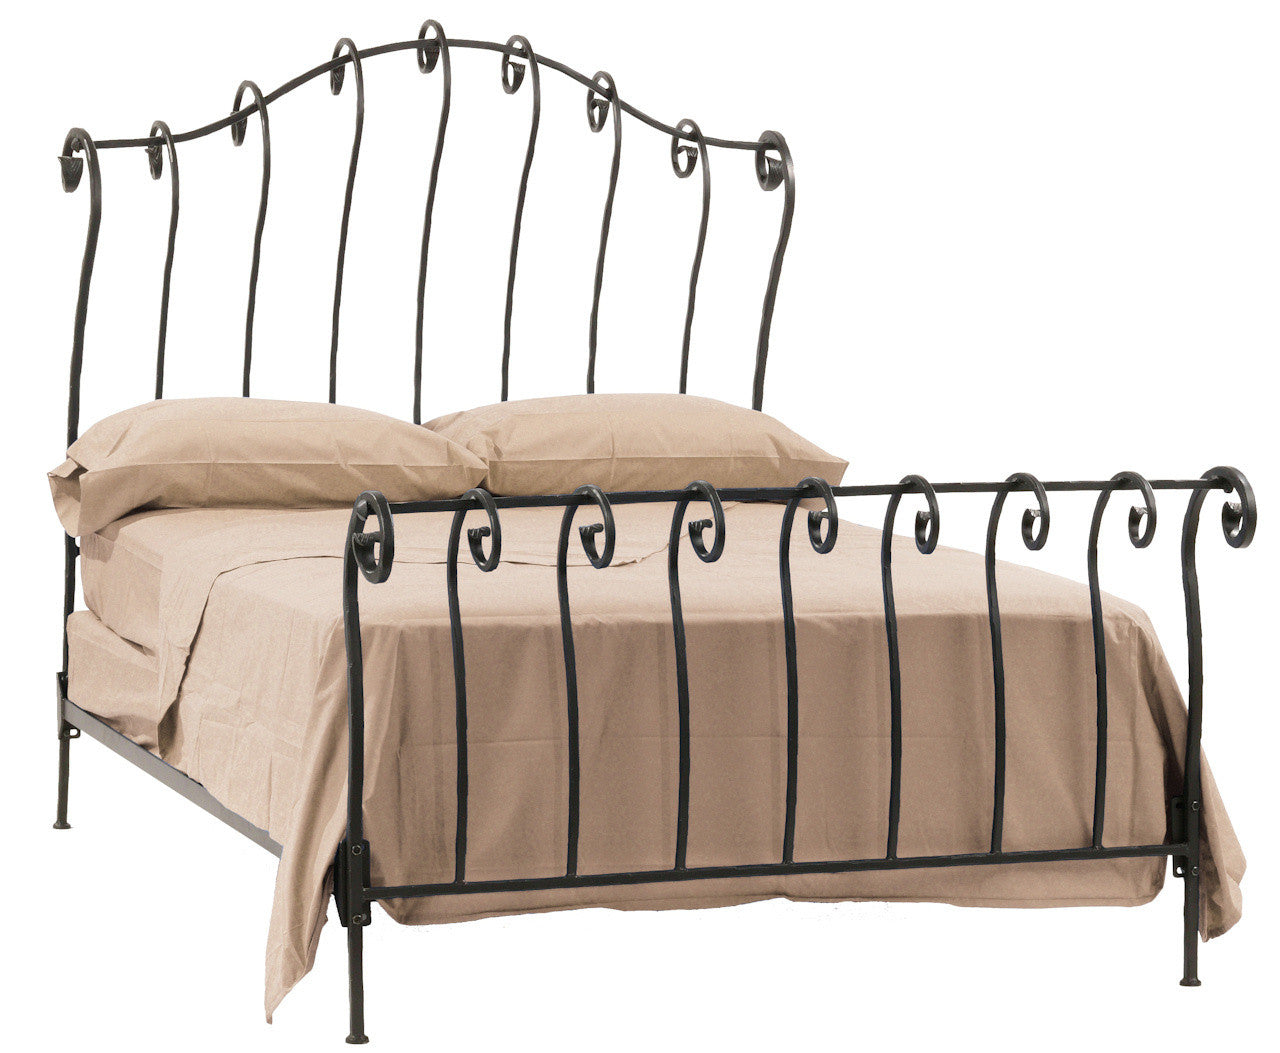 Stratford Sleigh California King Bed - Stone County Bed Image